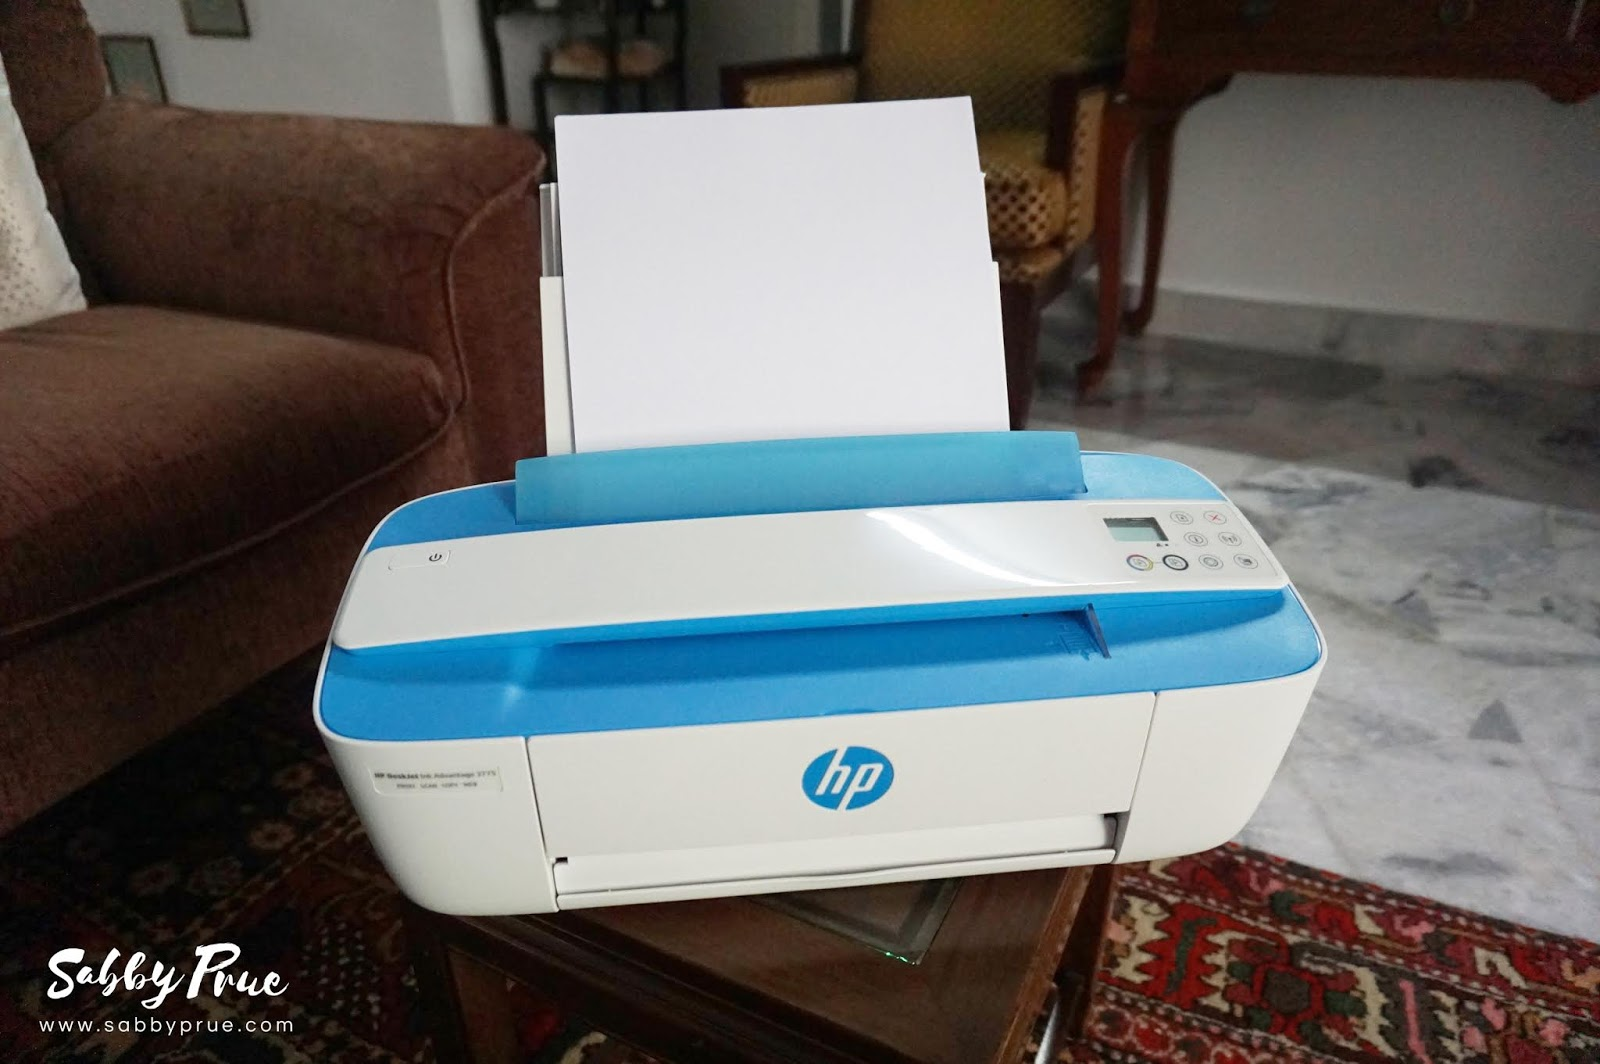 Hp Deskjet Ink Advantage Printer To Rescue Kids From Their Homework 3775 All In One Is A Sleek And Compact Which Makes It Suitable Be Used By Of Course Younger Children Needs